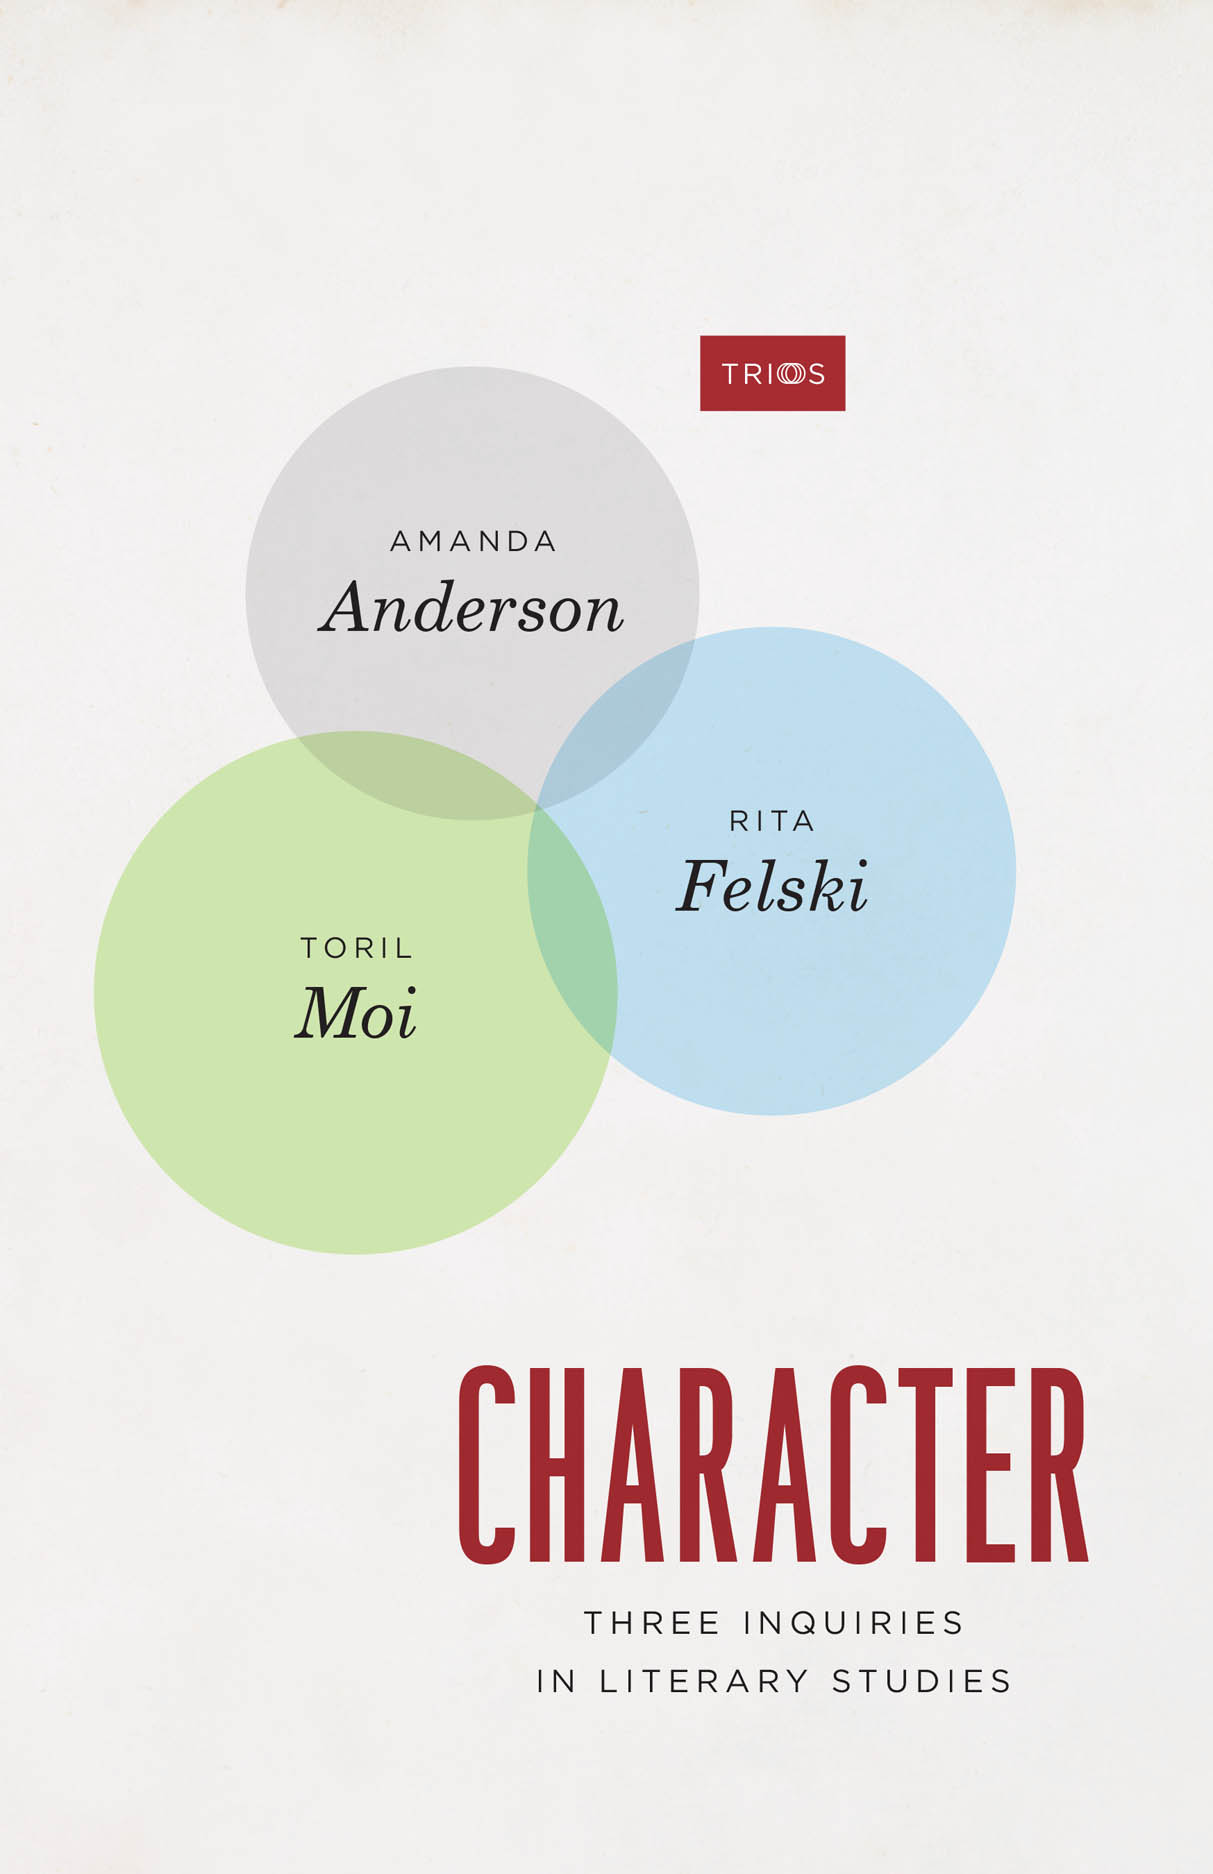 Character: Three Inquiries in Literary Studies